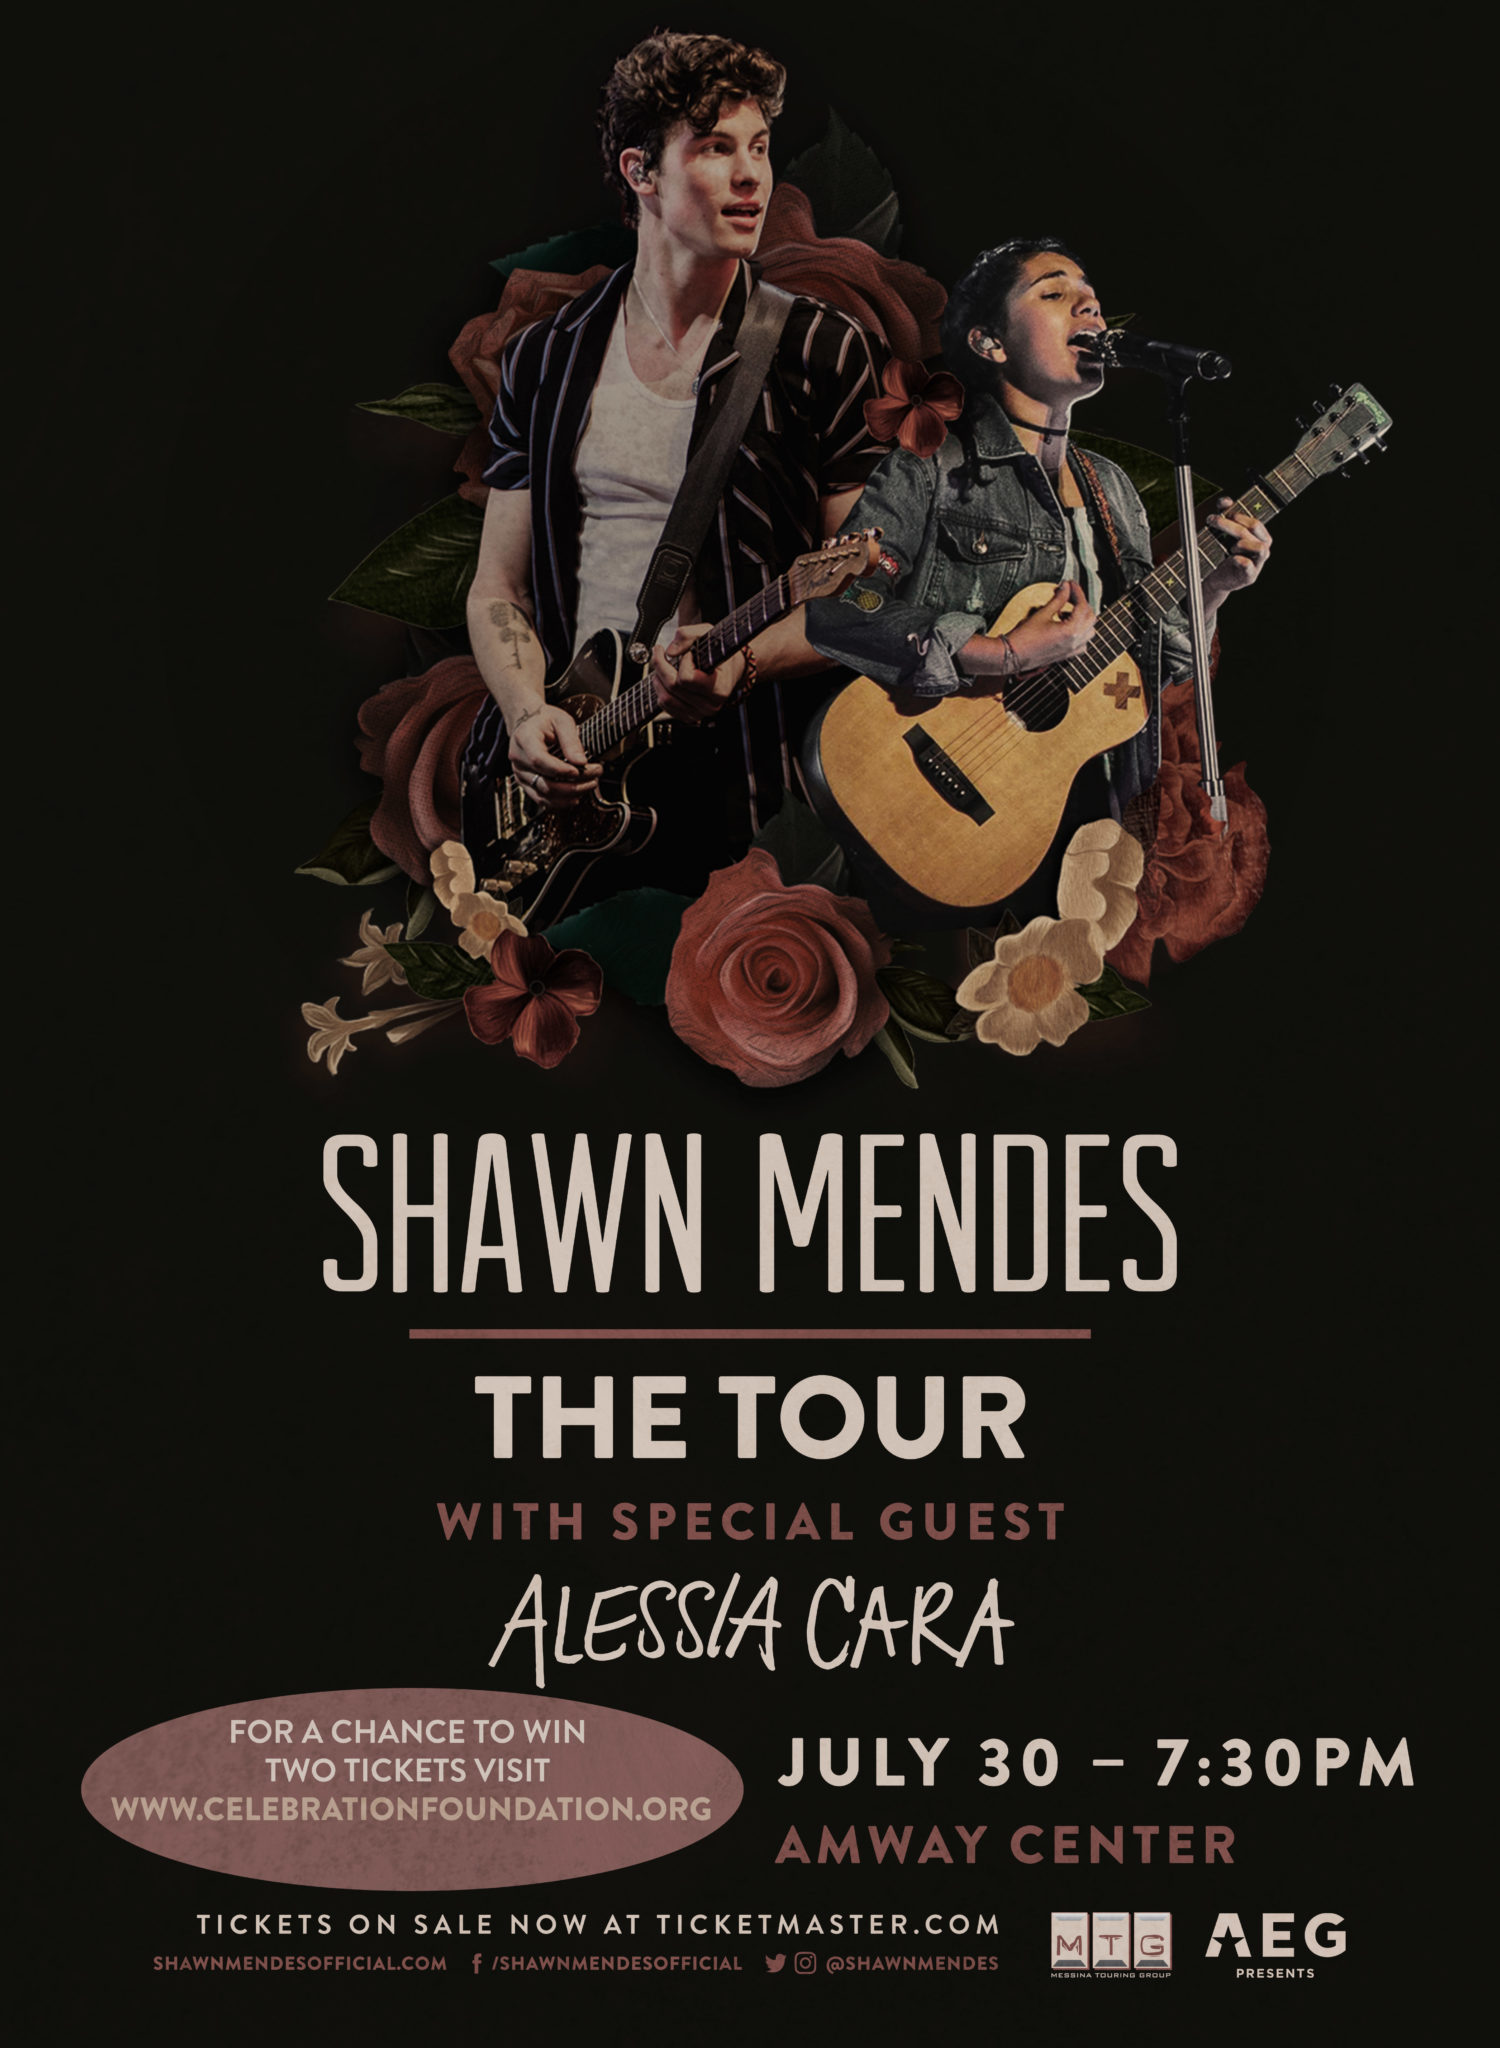 Shawn Mendes Alessia Cara Raffle - Celebration Foundation